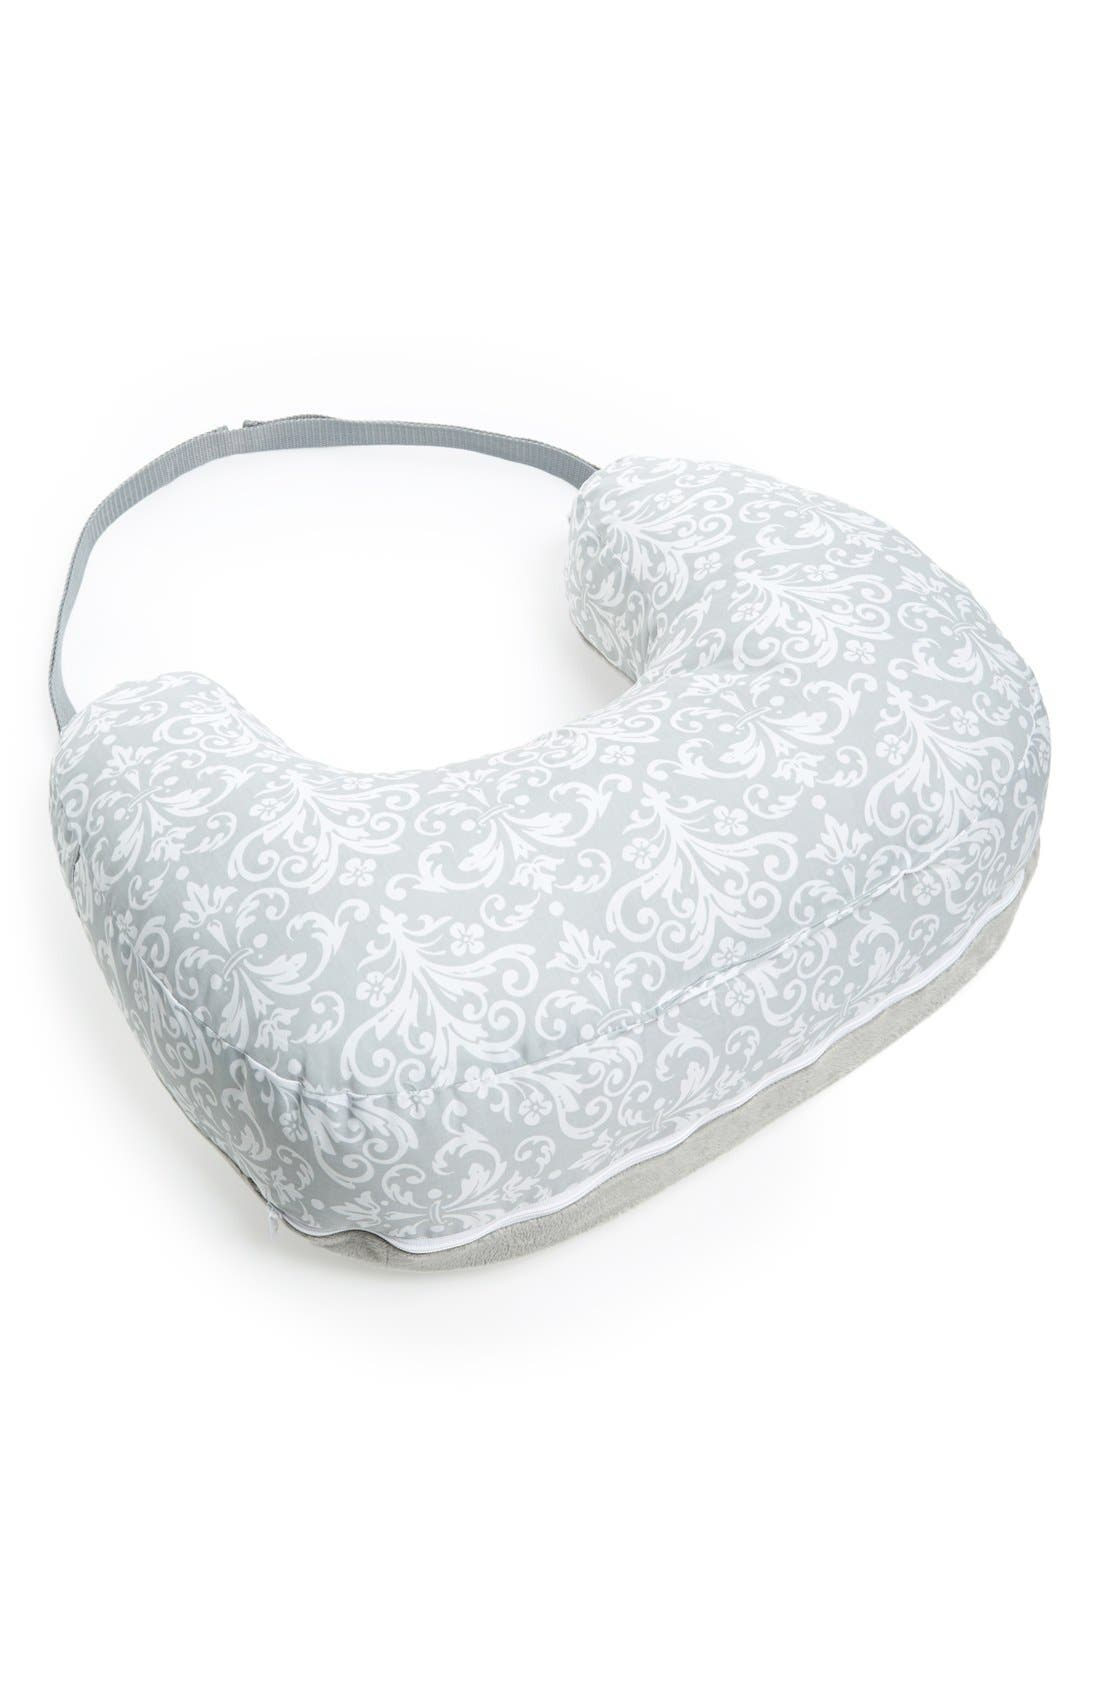 Boppy Two Sided Breastfeeding Pillow & Slipcover